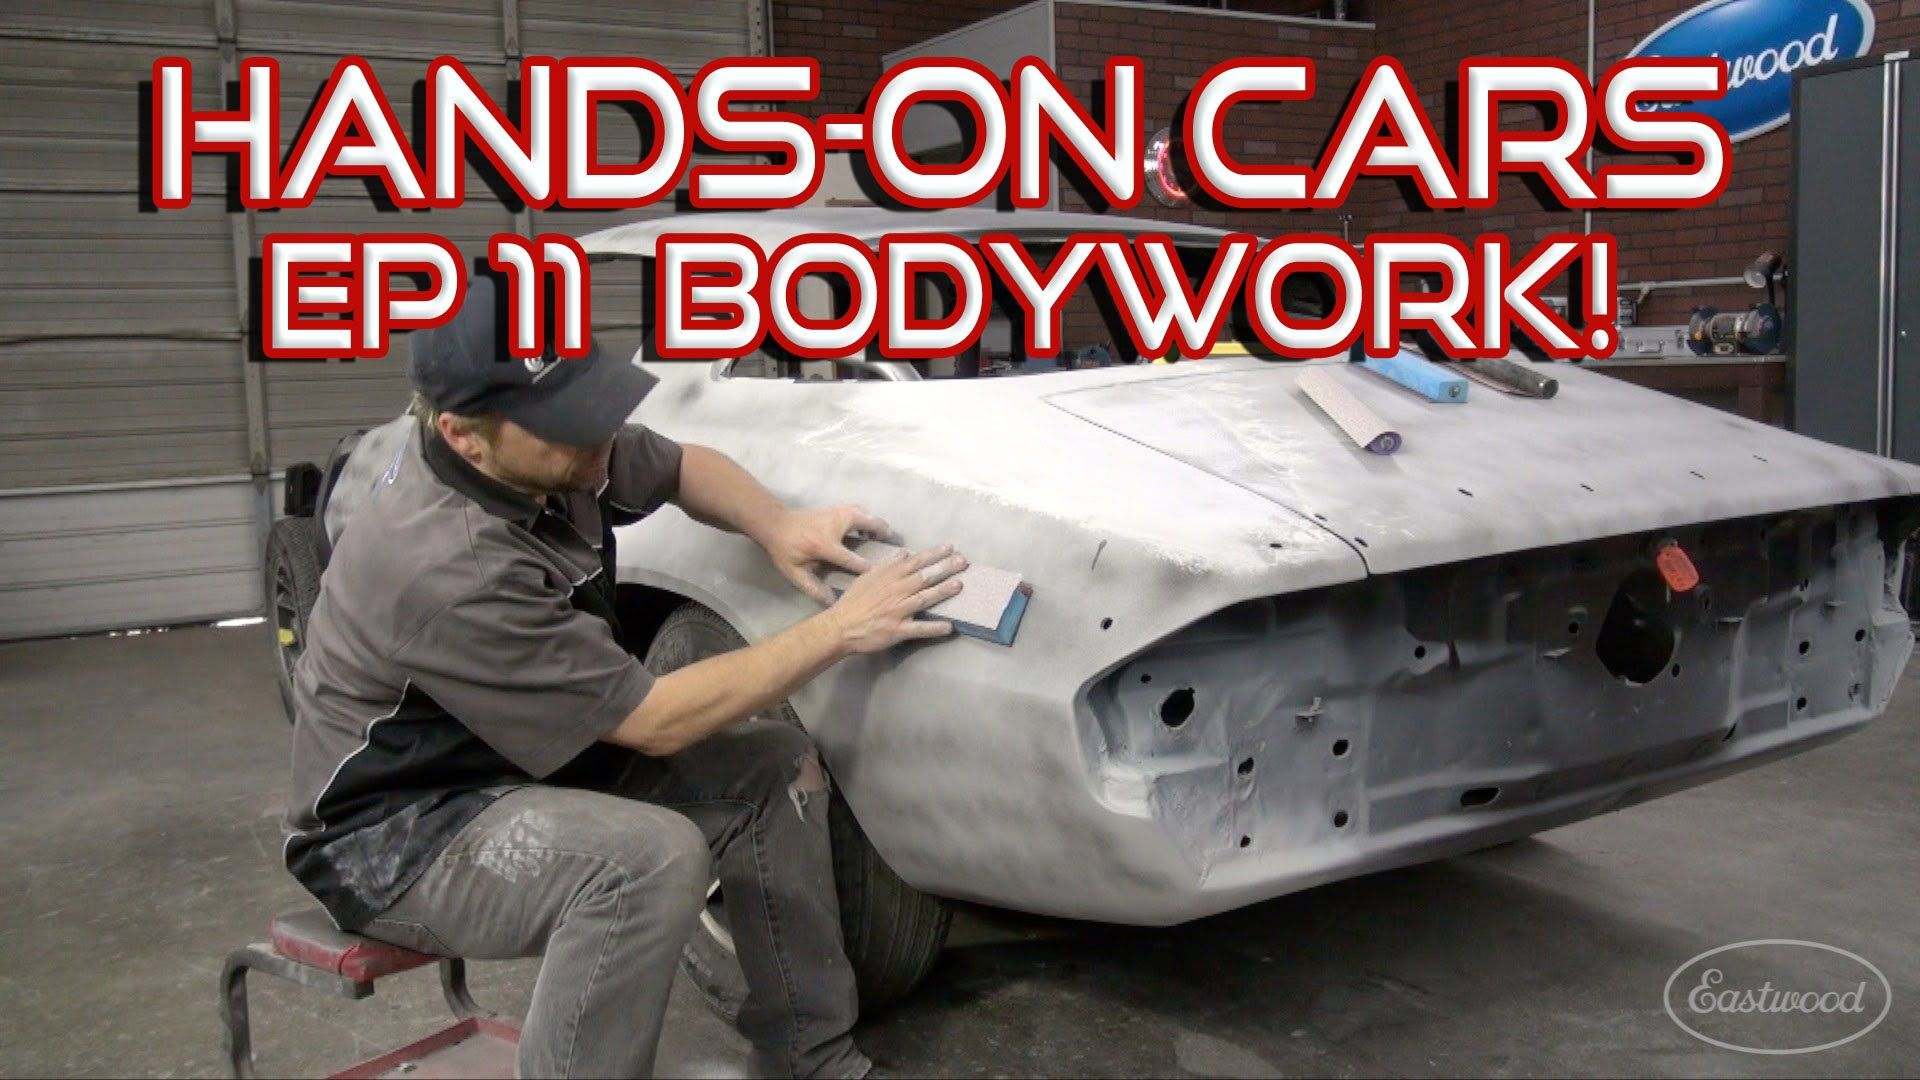 How To Bodywork A Car Spray Primer Surfacer On Hands On Cars 11 Get Automoblile